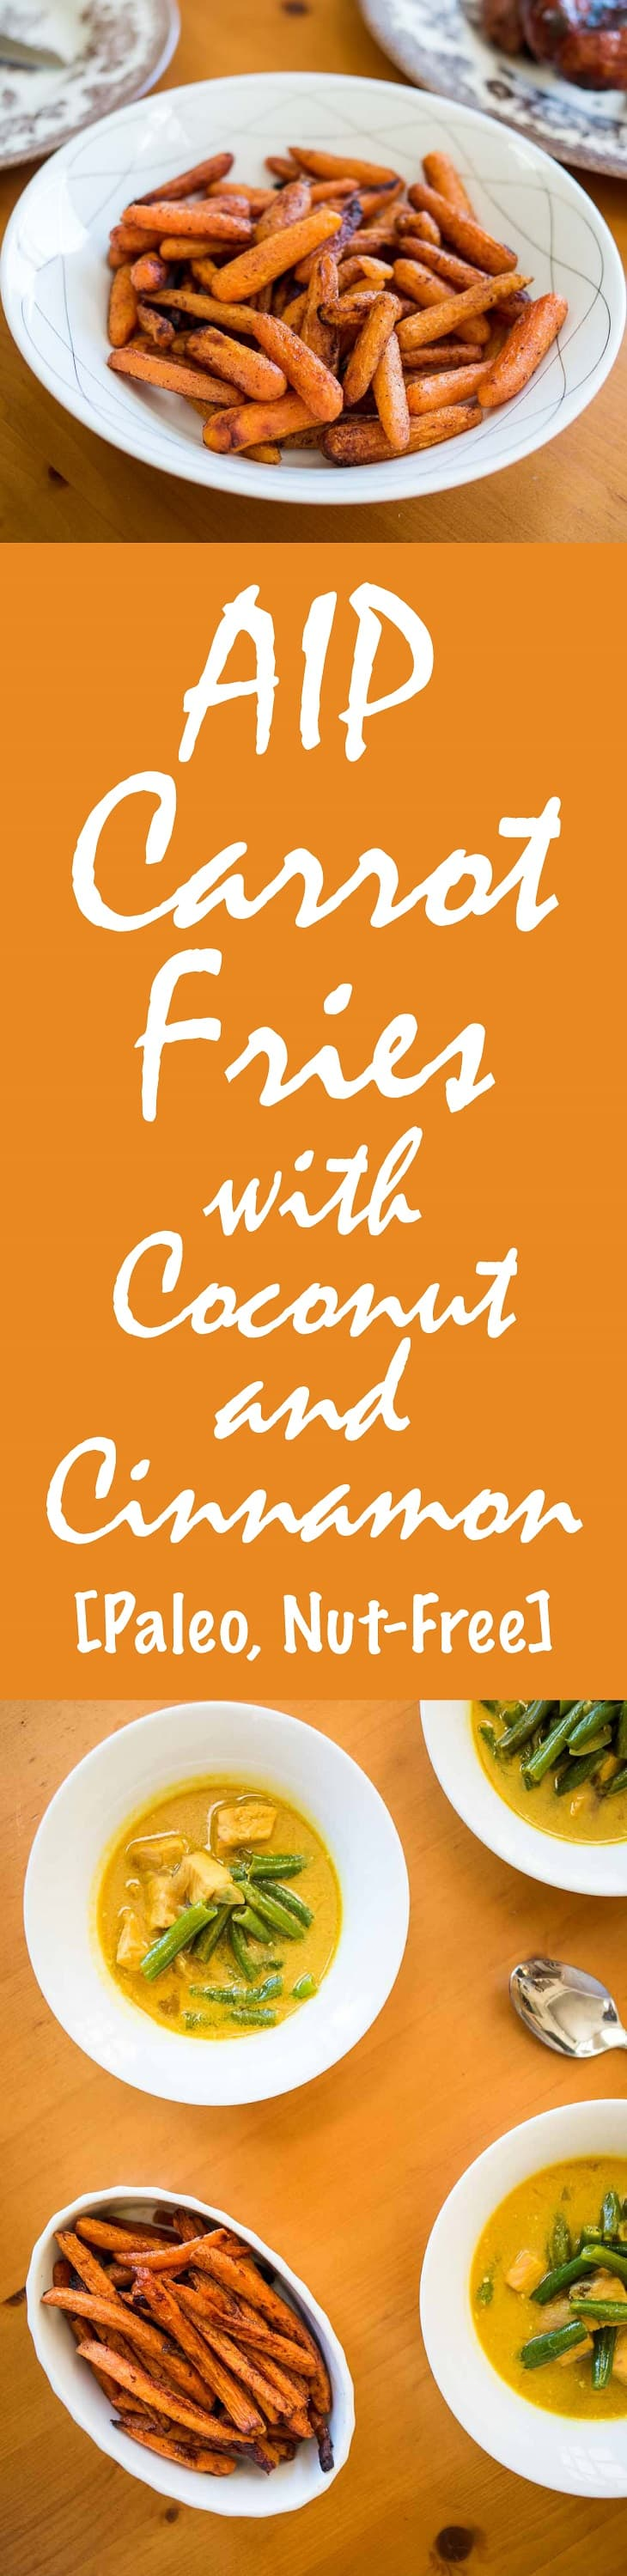 AIP Carrot Fries Recipe with Coconut and Cinnamon [Paleo, Nut-Free] #paleo #recipe http://healingautoimmune.com/aip-carrot-fries-recipe-paleo